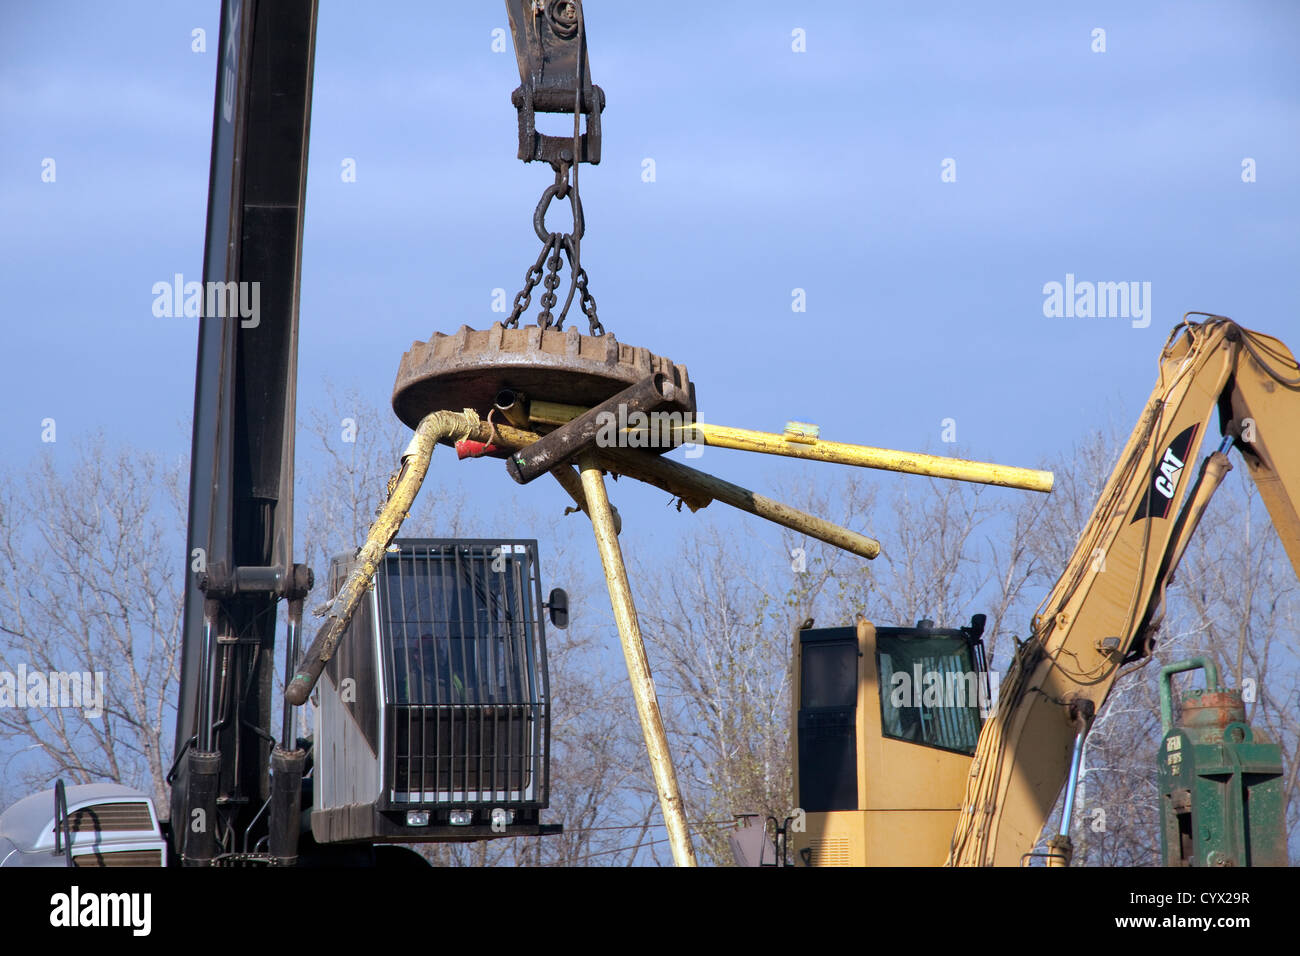 Electromagnetic Crane lifting steel and metal scrap for shredder at Recycling Plant E USA - Stock Image